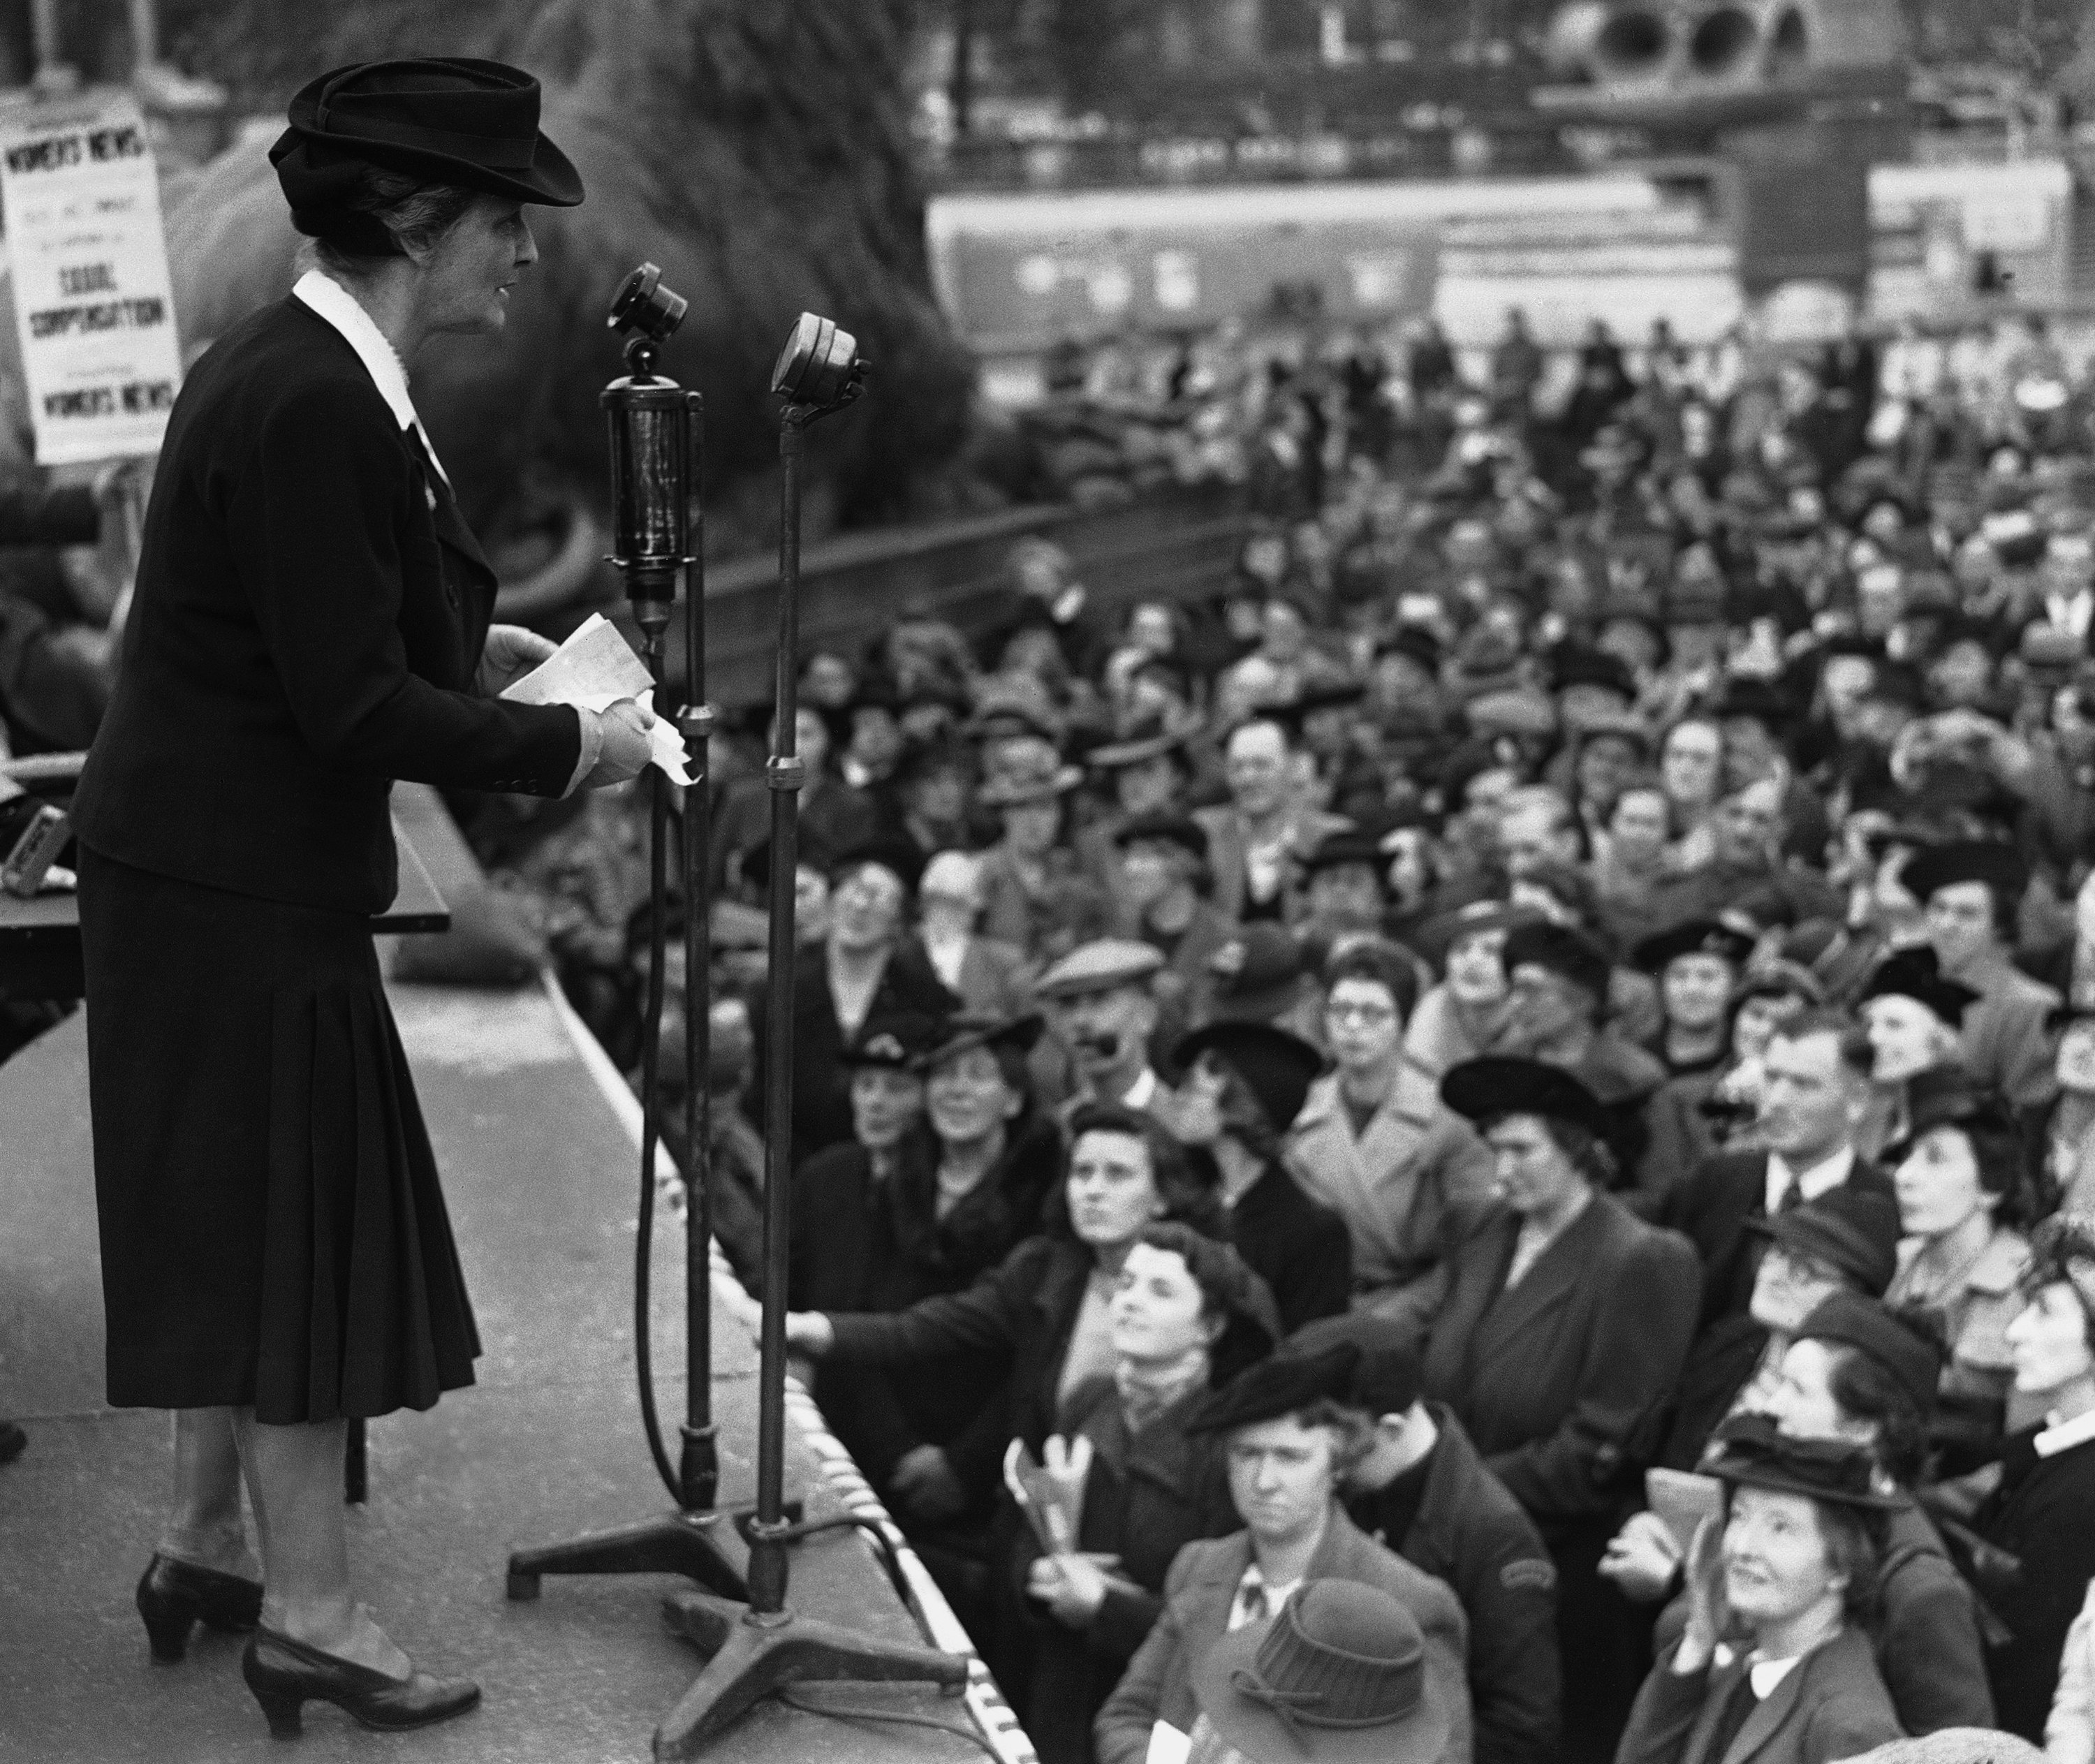 Lady Nancy Astor Member of Parliament, speaking at a mass meeting in Trafalgar Square in London on Sept. 20, 1941, to demand Equal war injury compensation for men and woman.